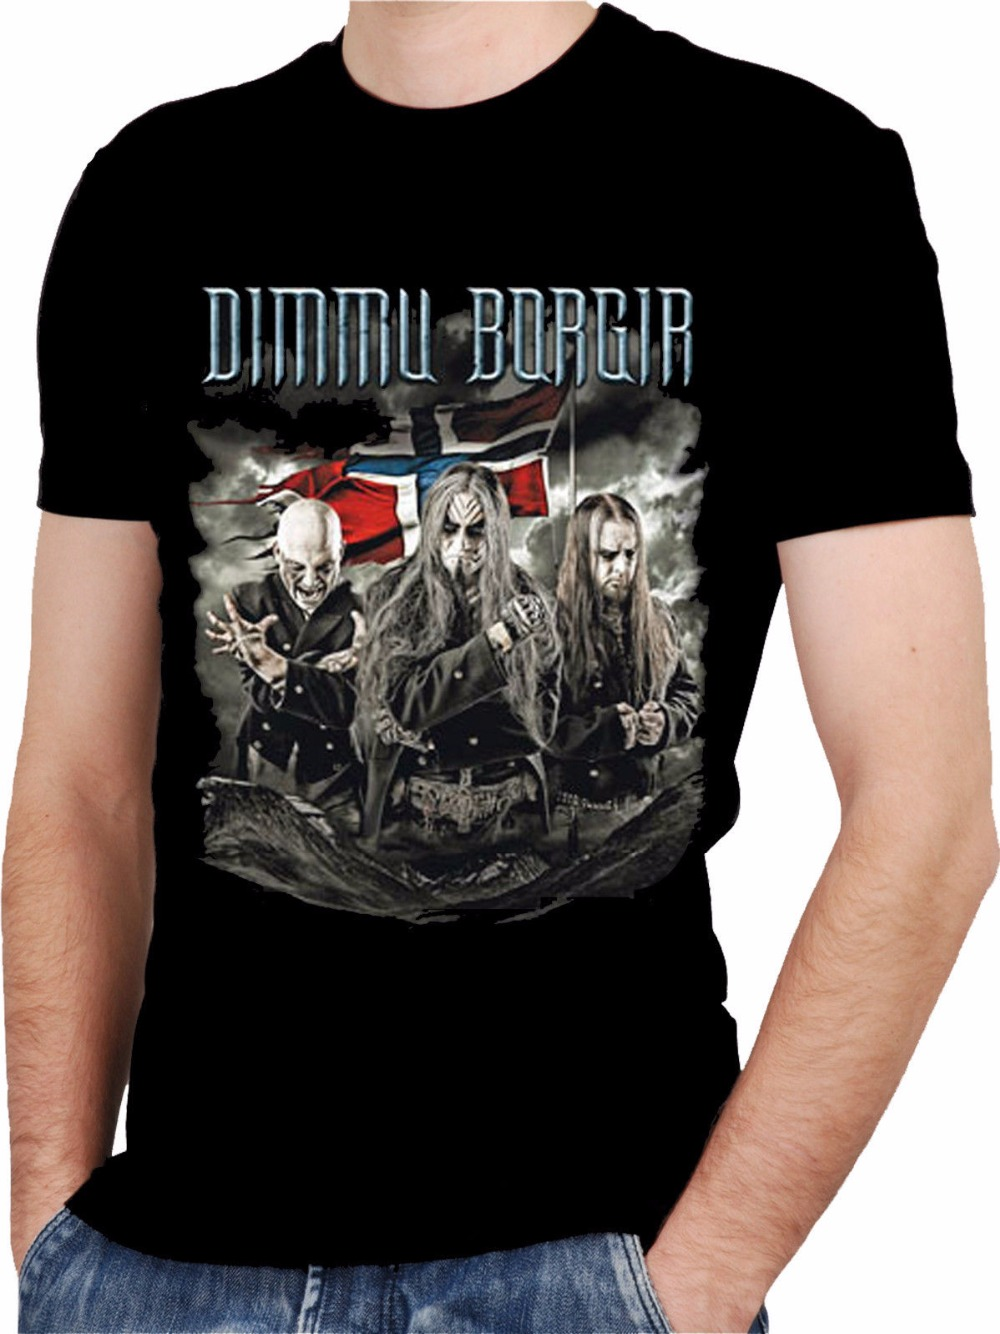 Cheap Tee Shirts Short Dimmu Borgir Band Black T-Shirt Rock T-Shirt Rock Band Shirt Rock ...